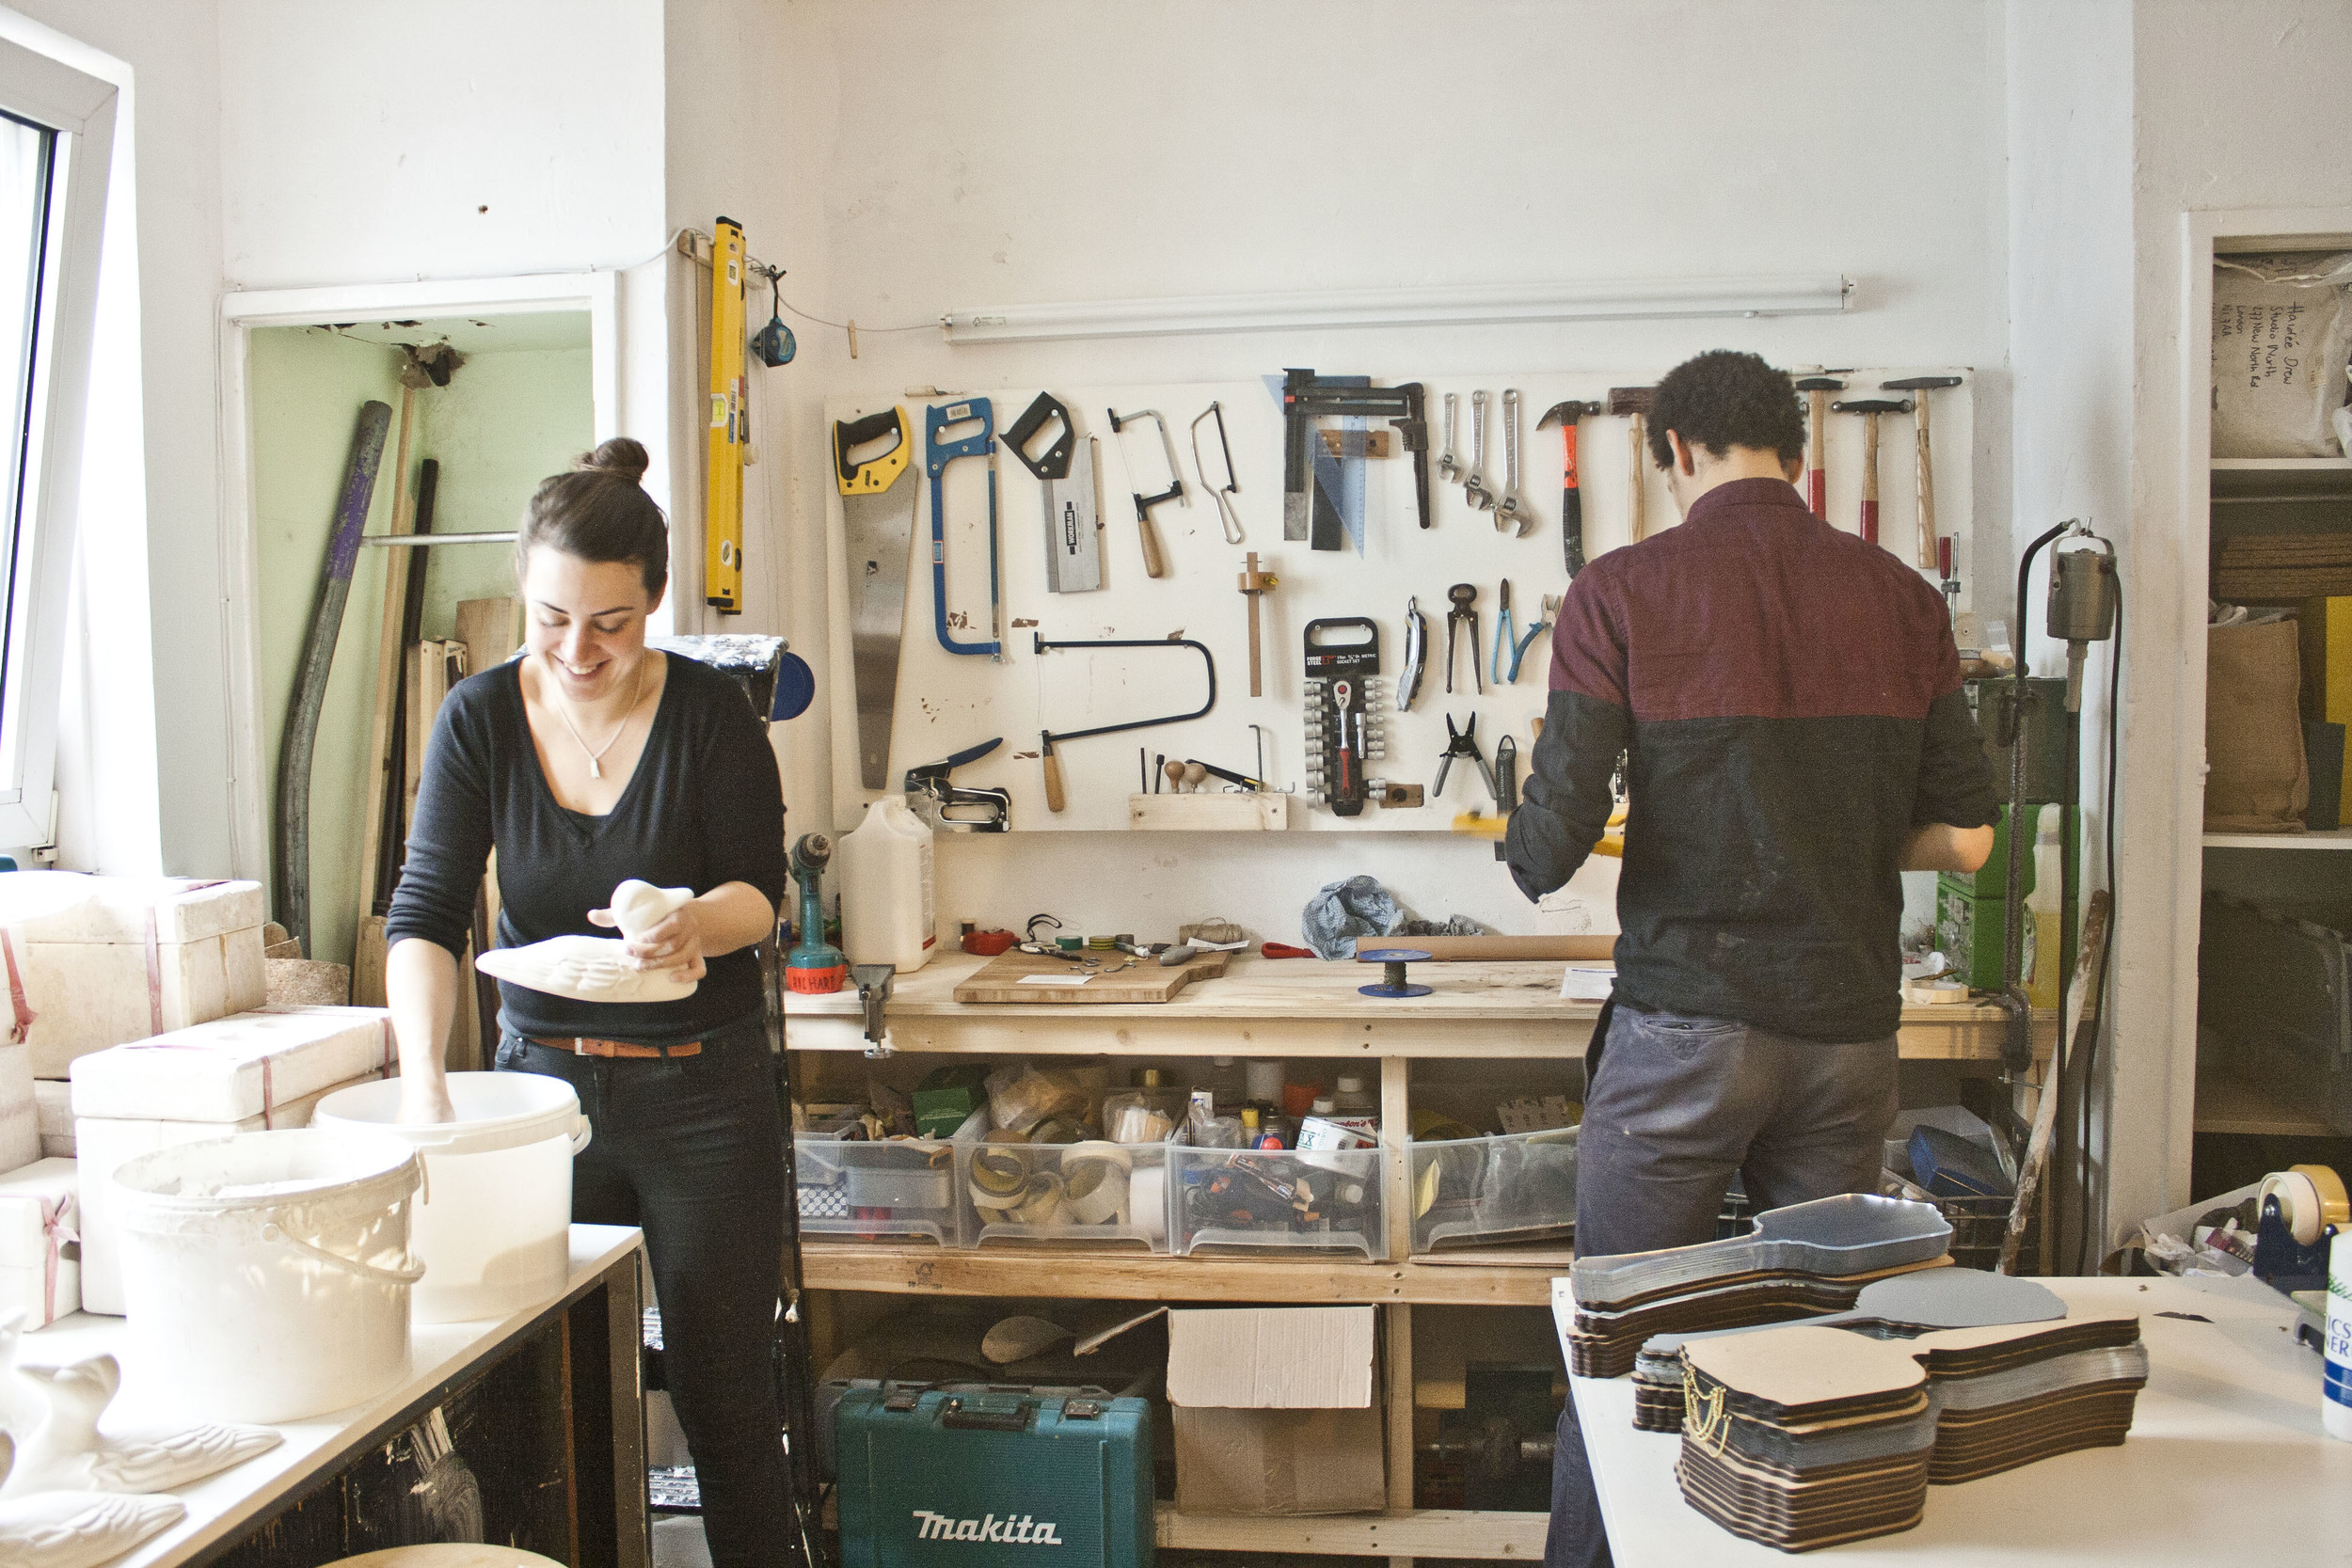 Haidee and Richard in the workshop